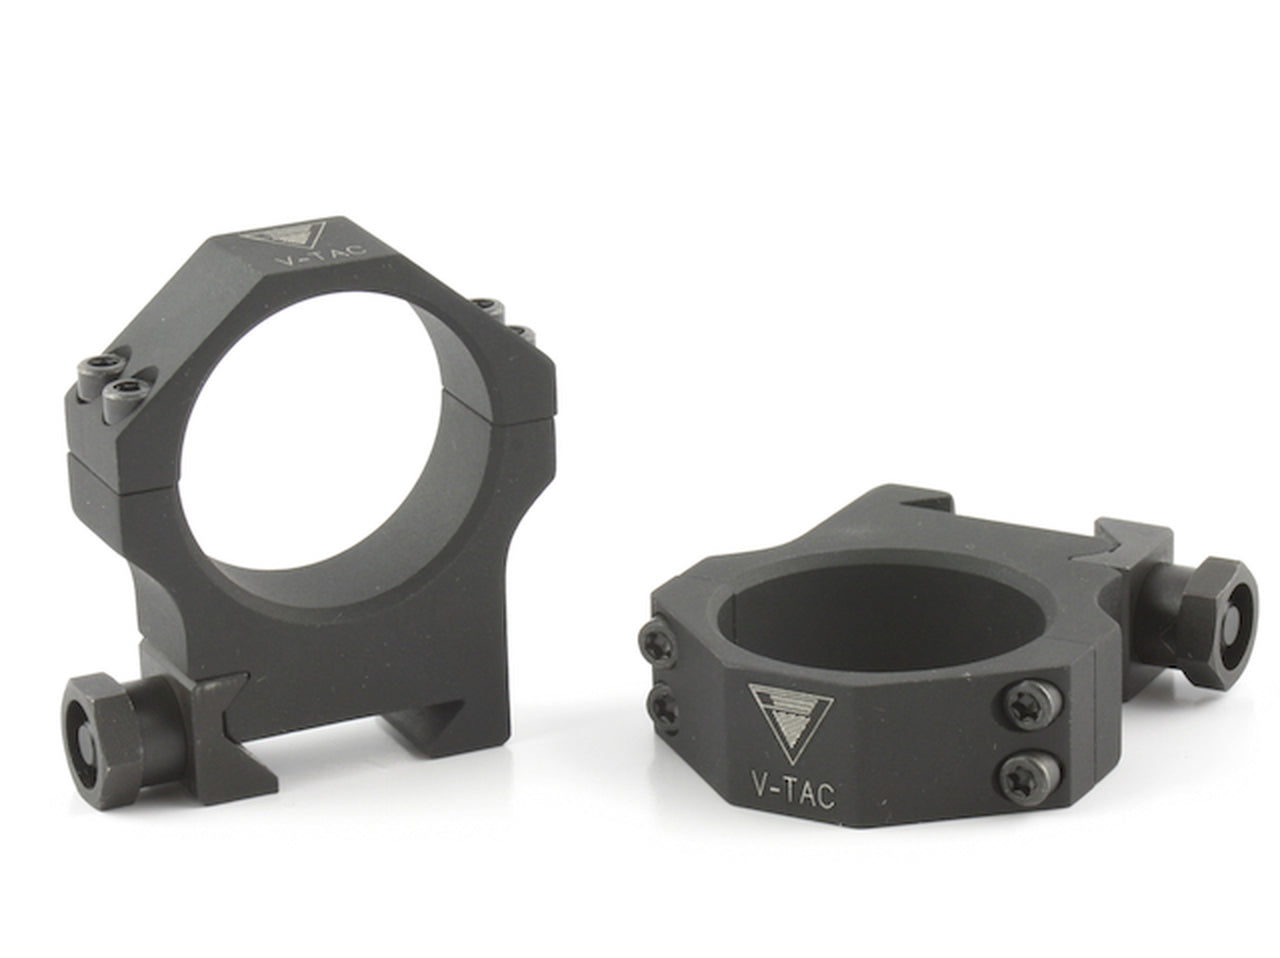 HD 35MM TACTICAL V-TAC RINGS, STEEL OR ALLOY, MED.